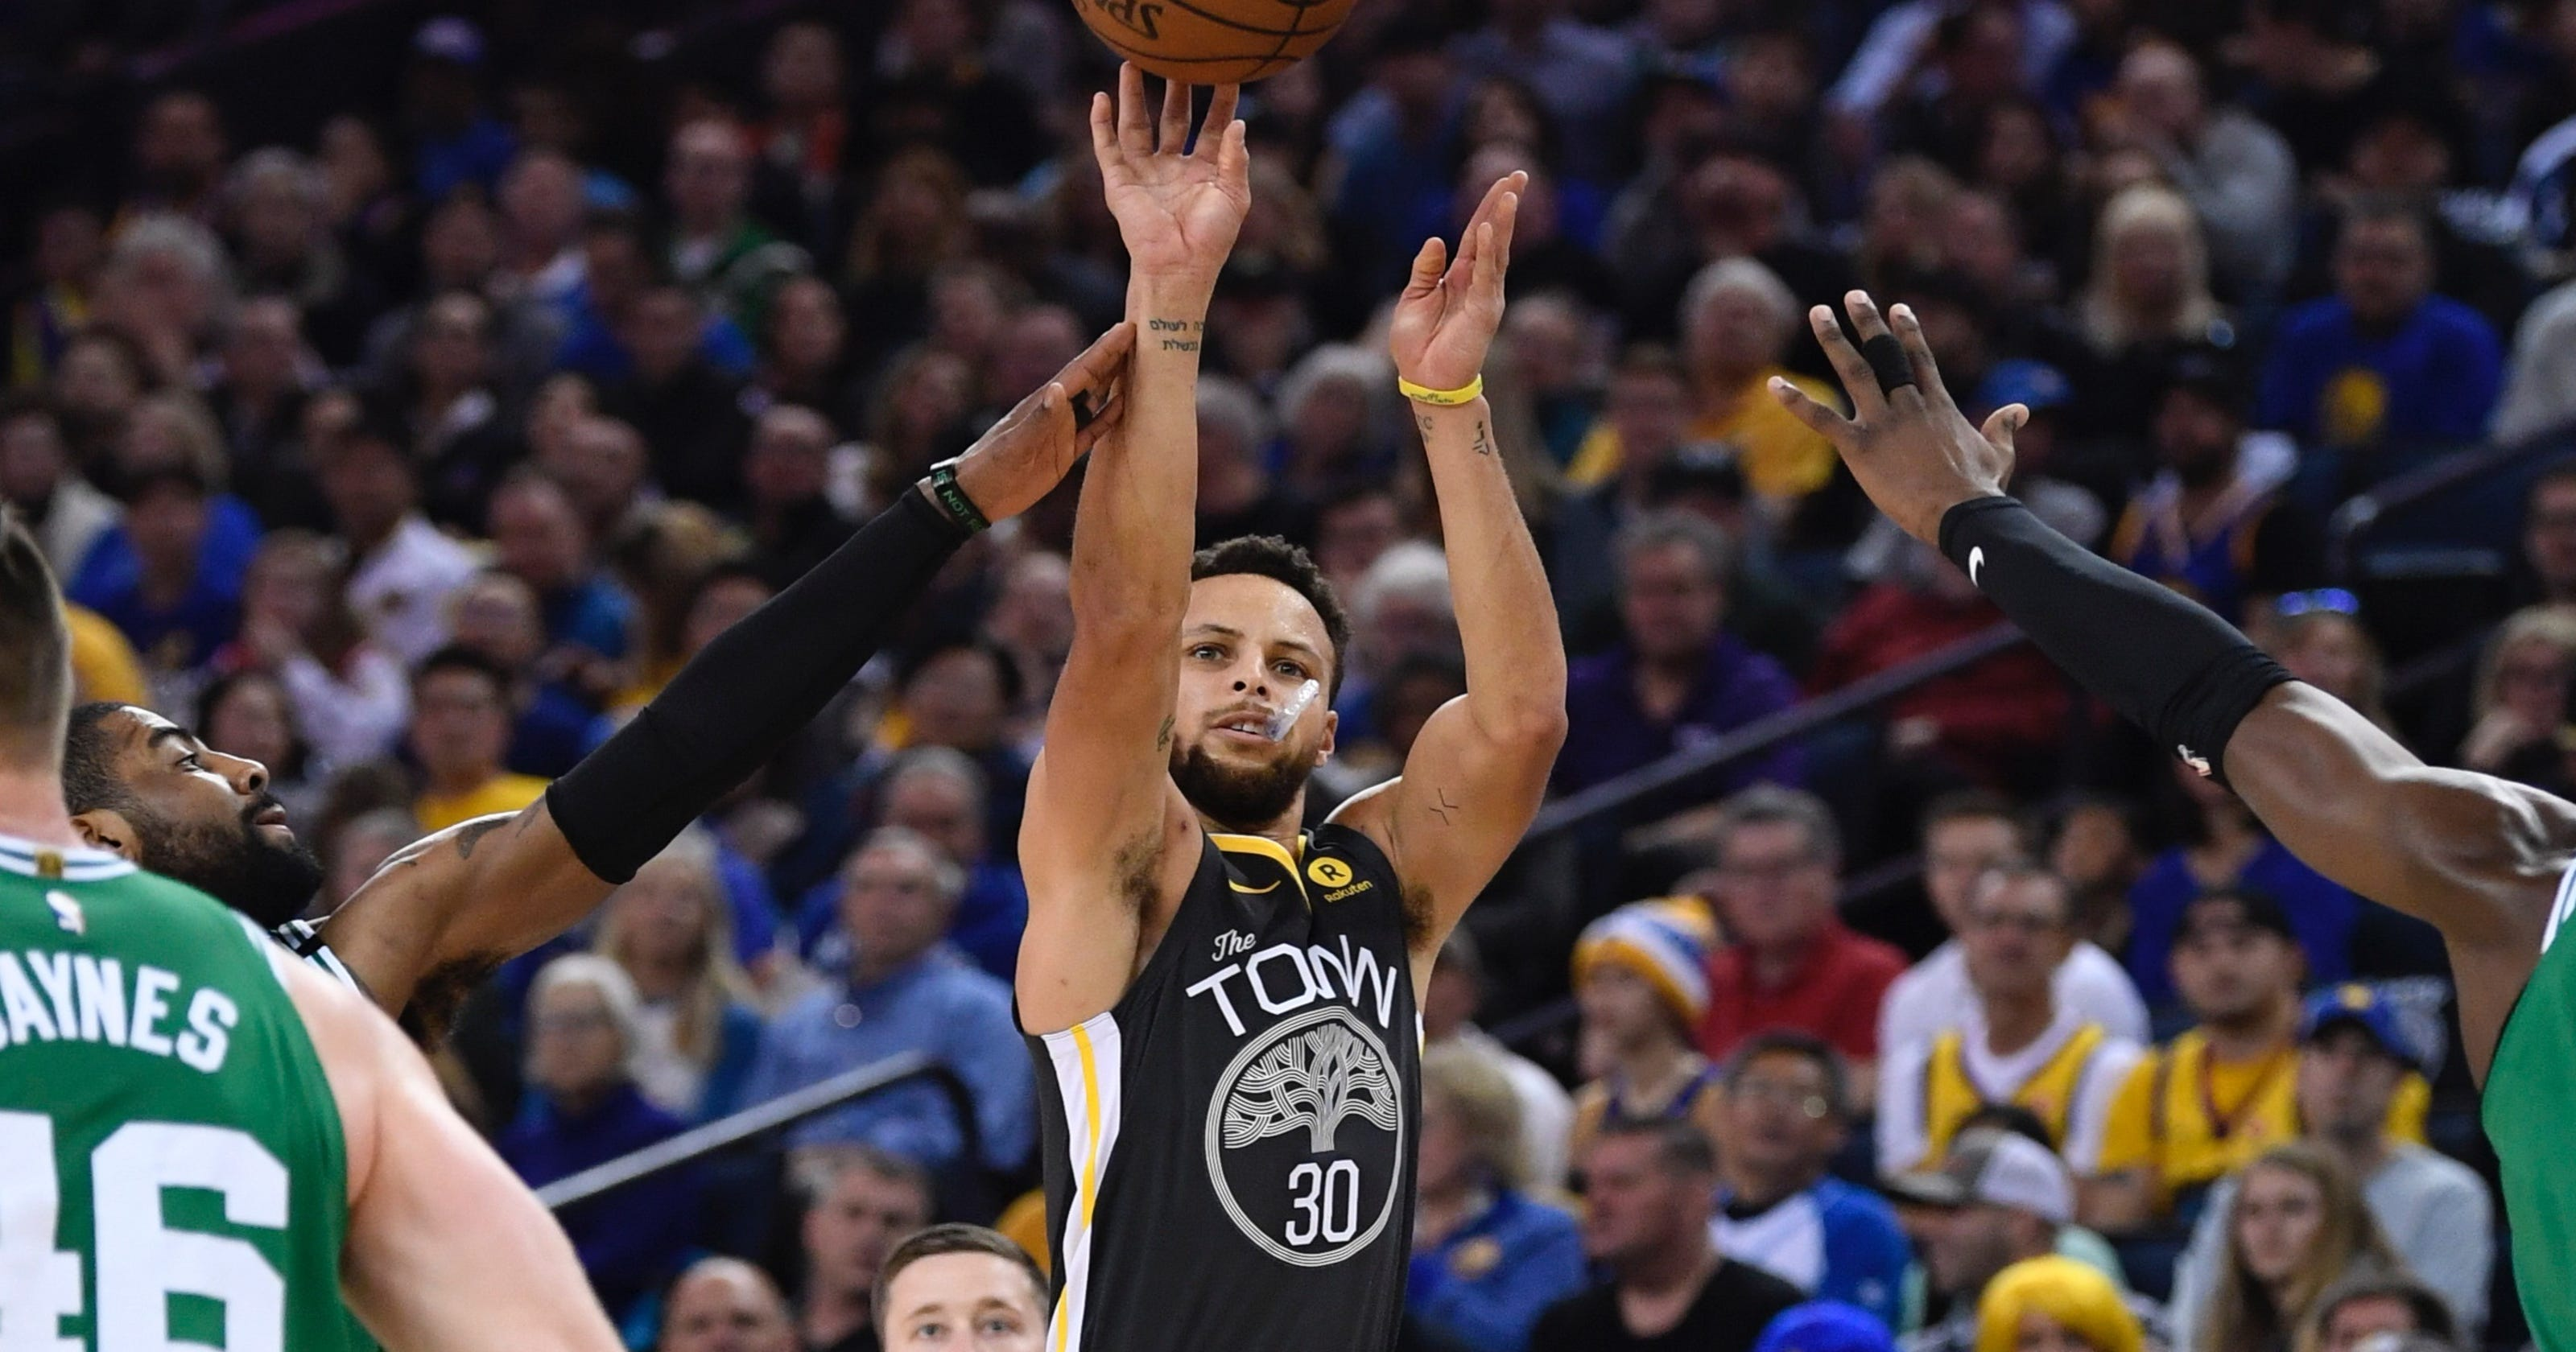 f98526a8018 Steph Curry outduels Kyrie Irving with 49 points as Warriors hold off  Celtics